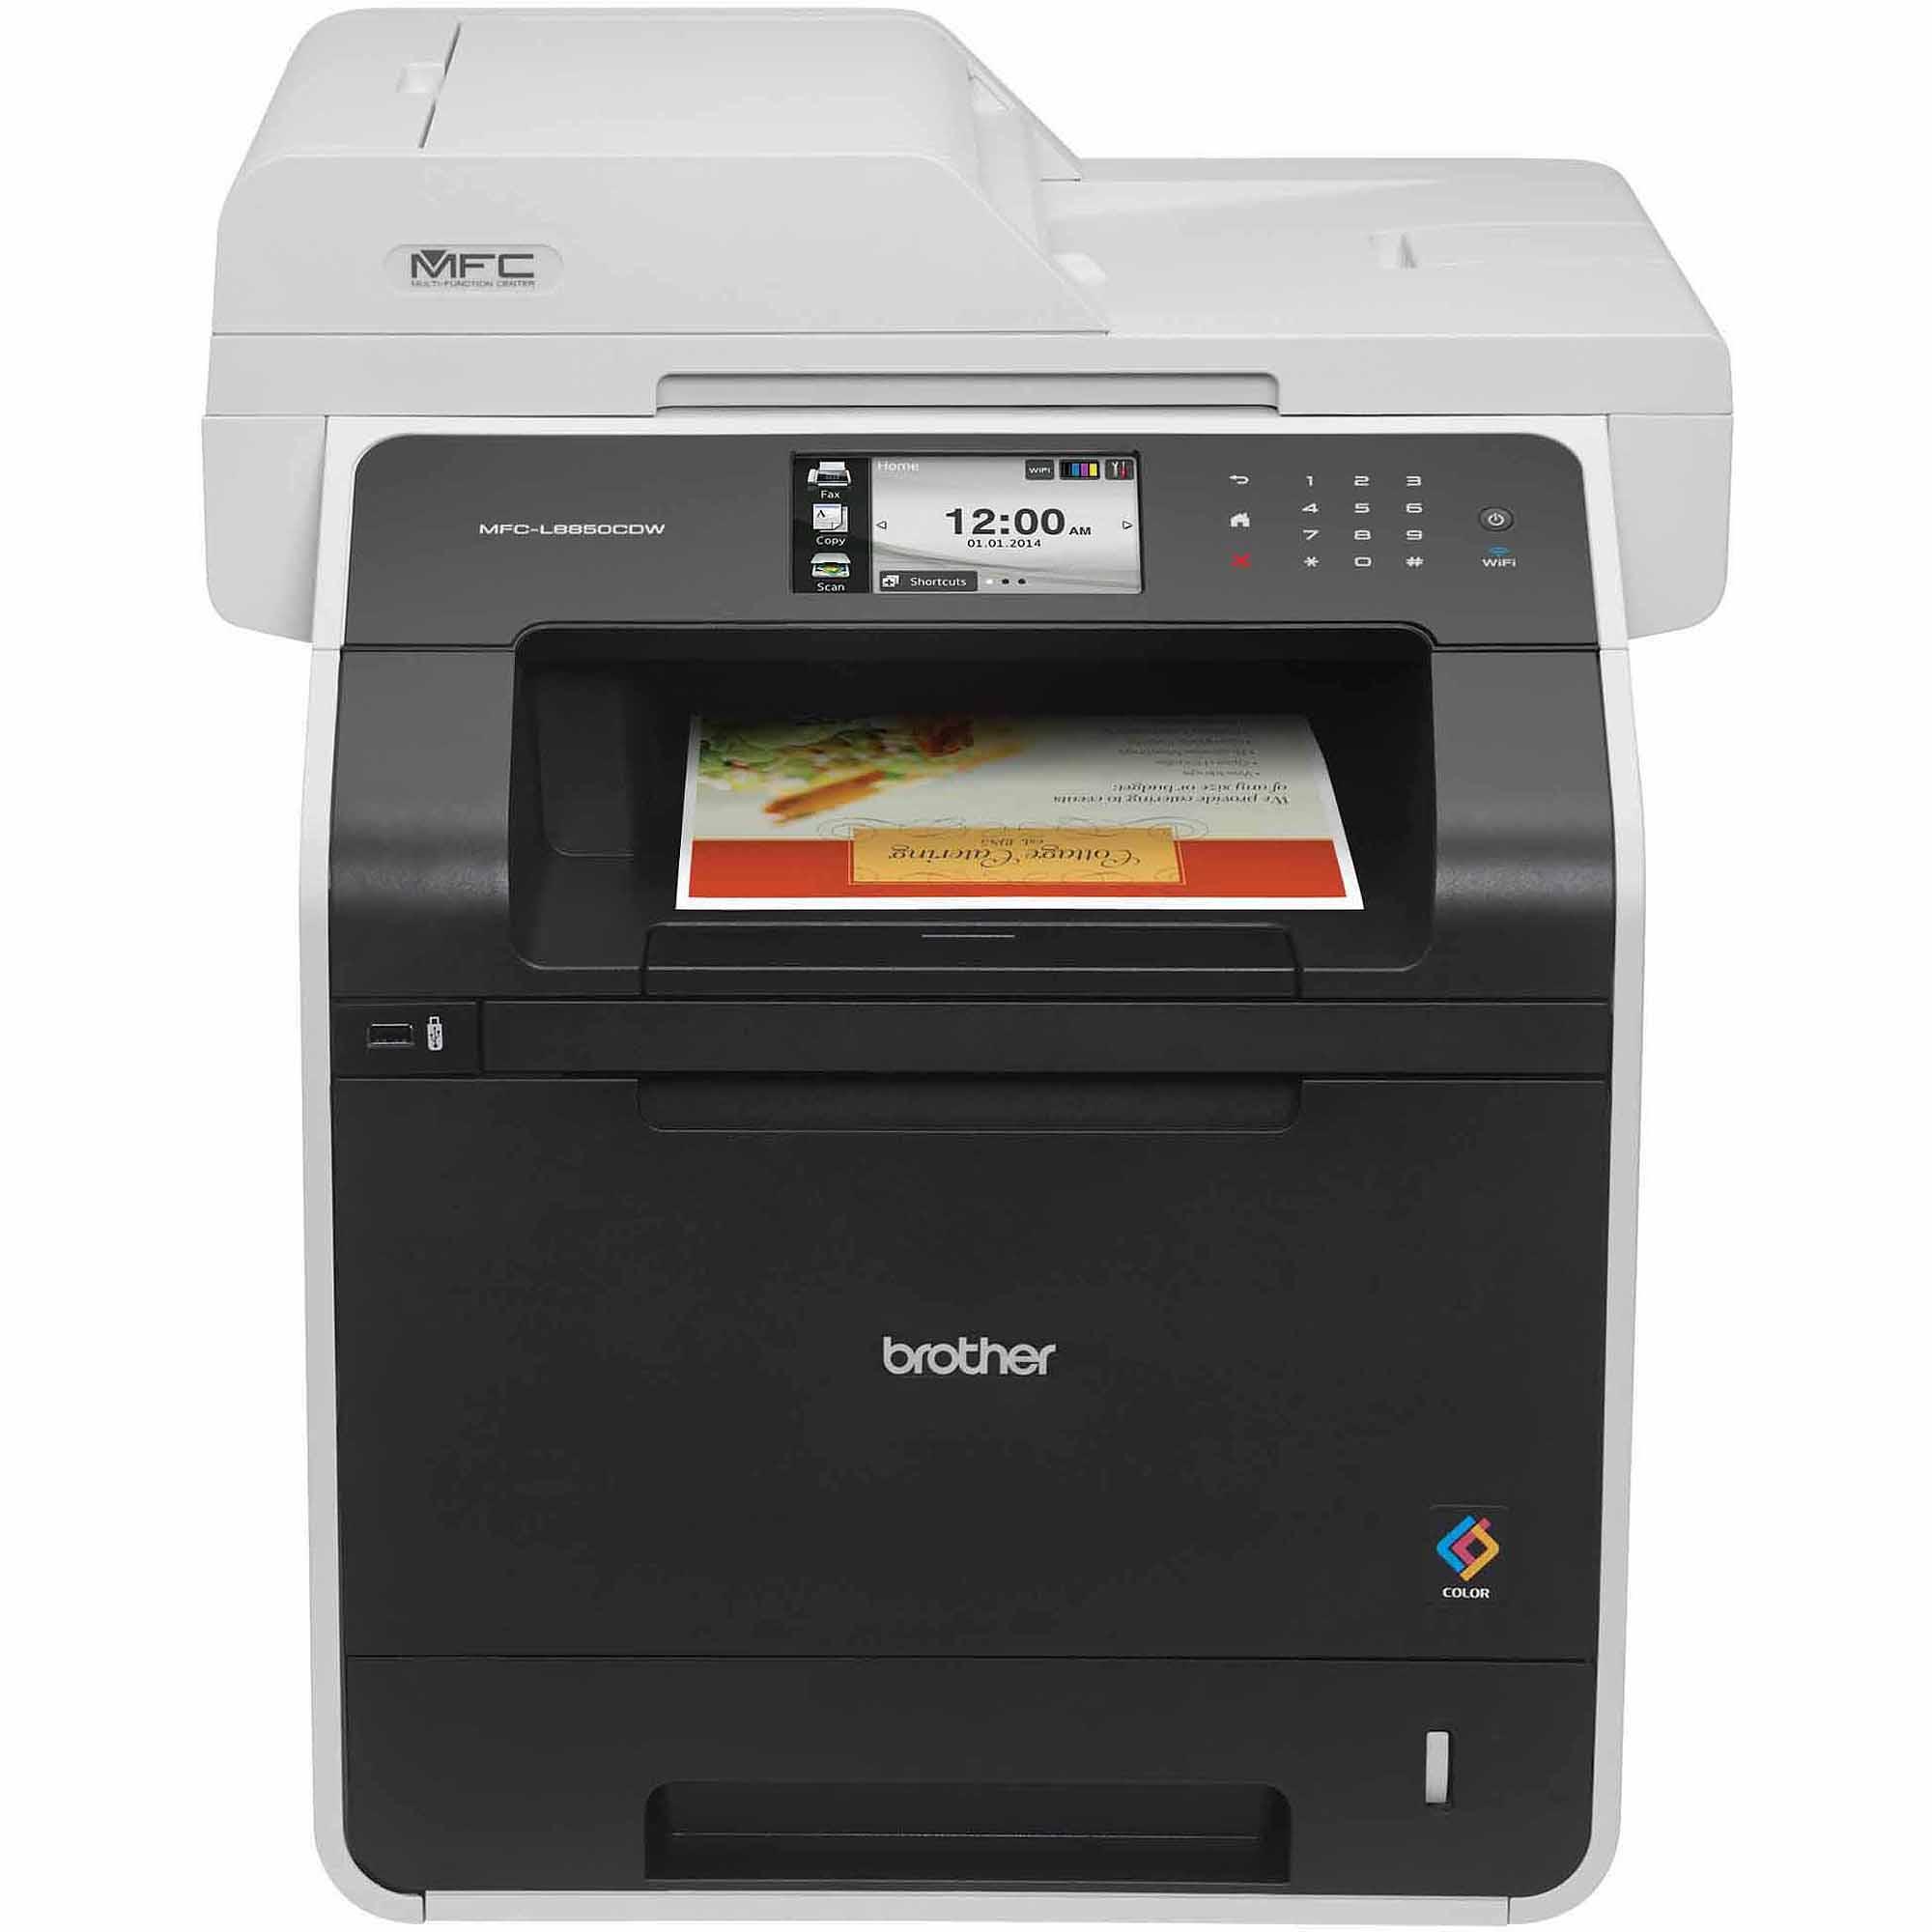 Brother MFC-L8850CDW Color Laser All-in-One Printer/Copier/Scanner/Fax Machine